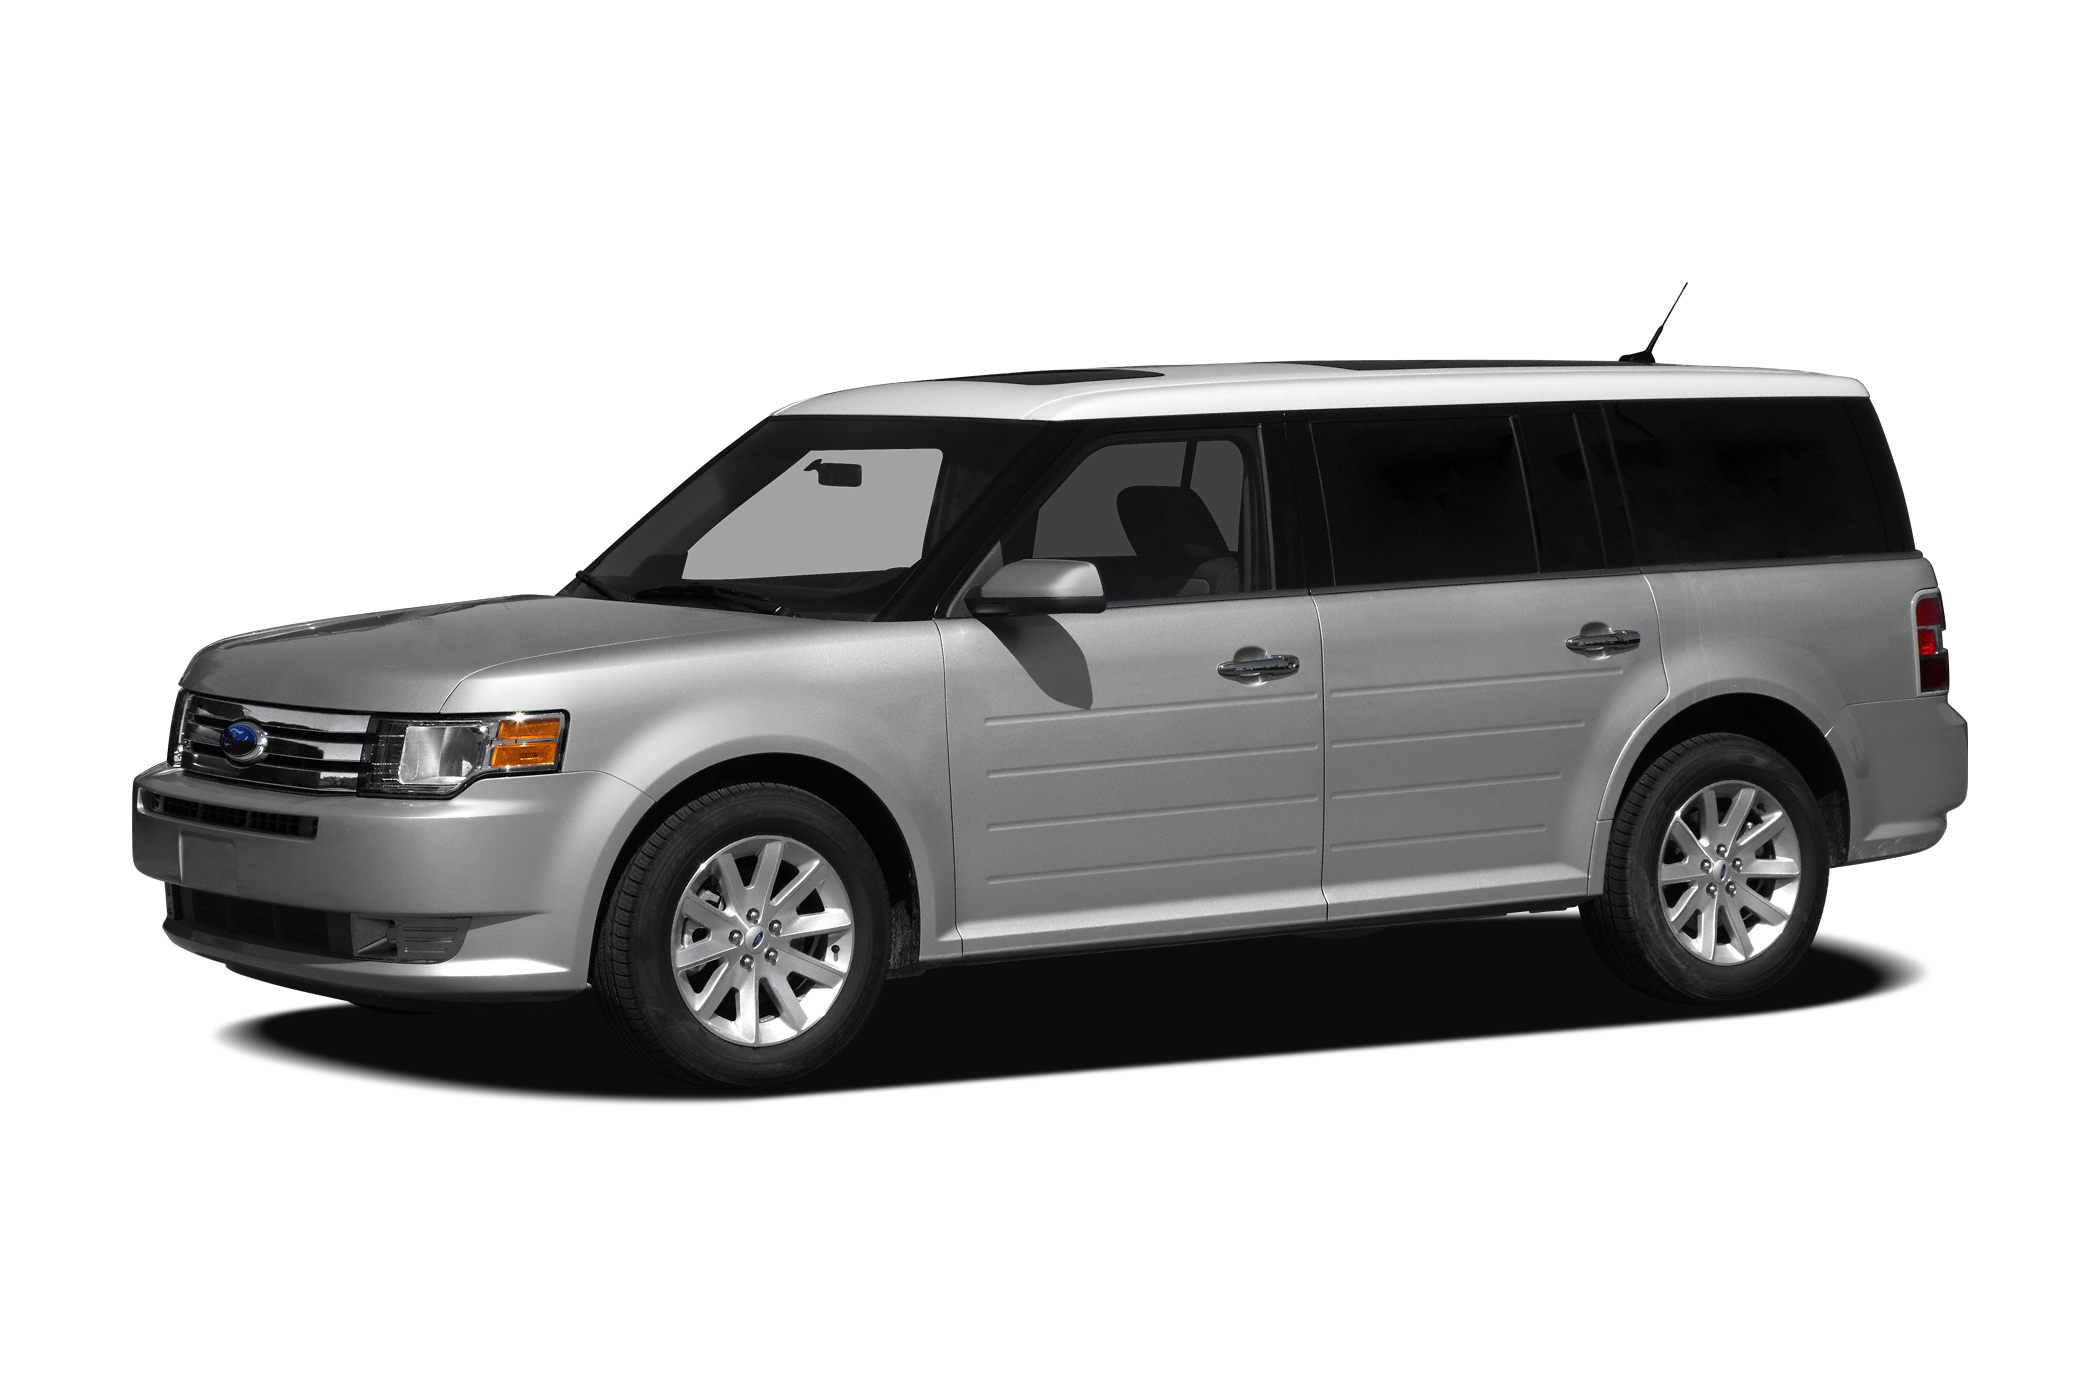 2009 Ford Flex Limited SUV for sale in Kalispell for $19,997 with 76,193 miles.